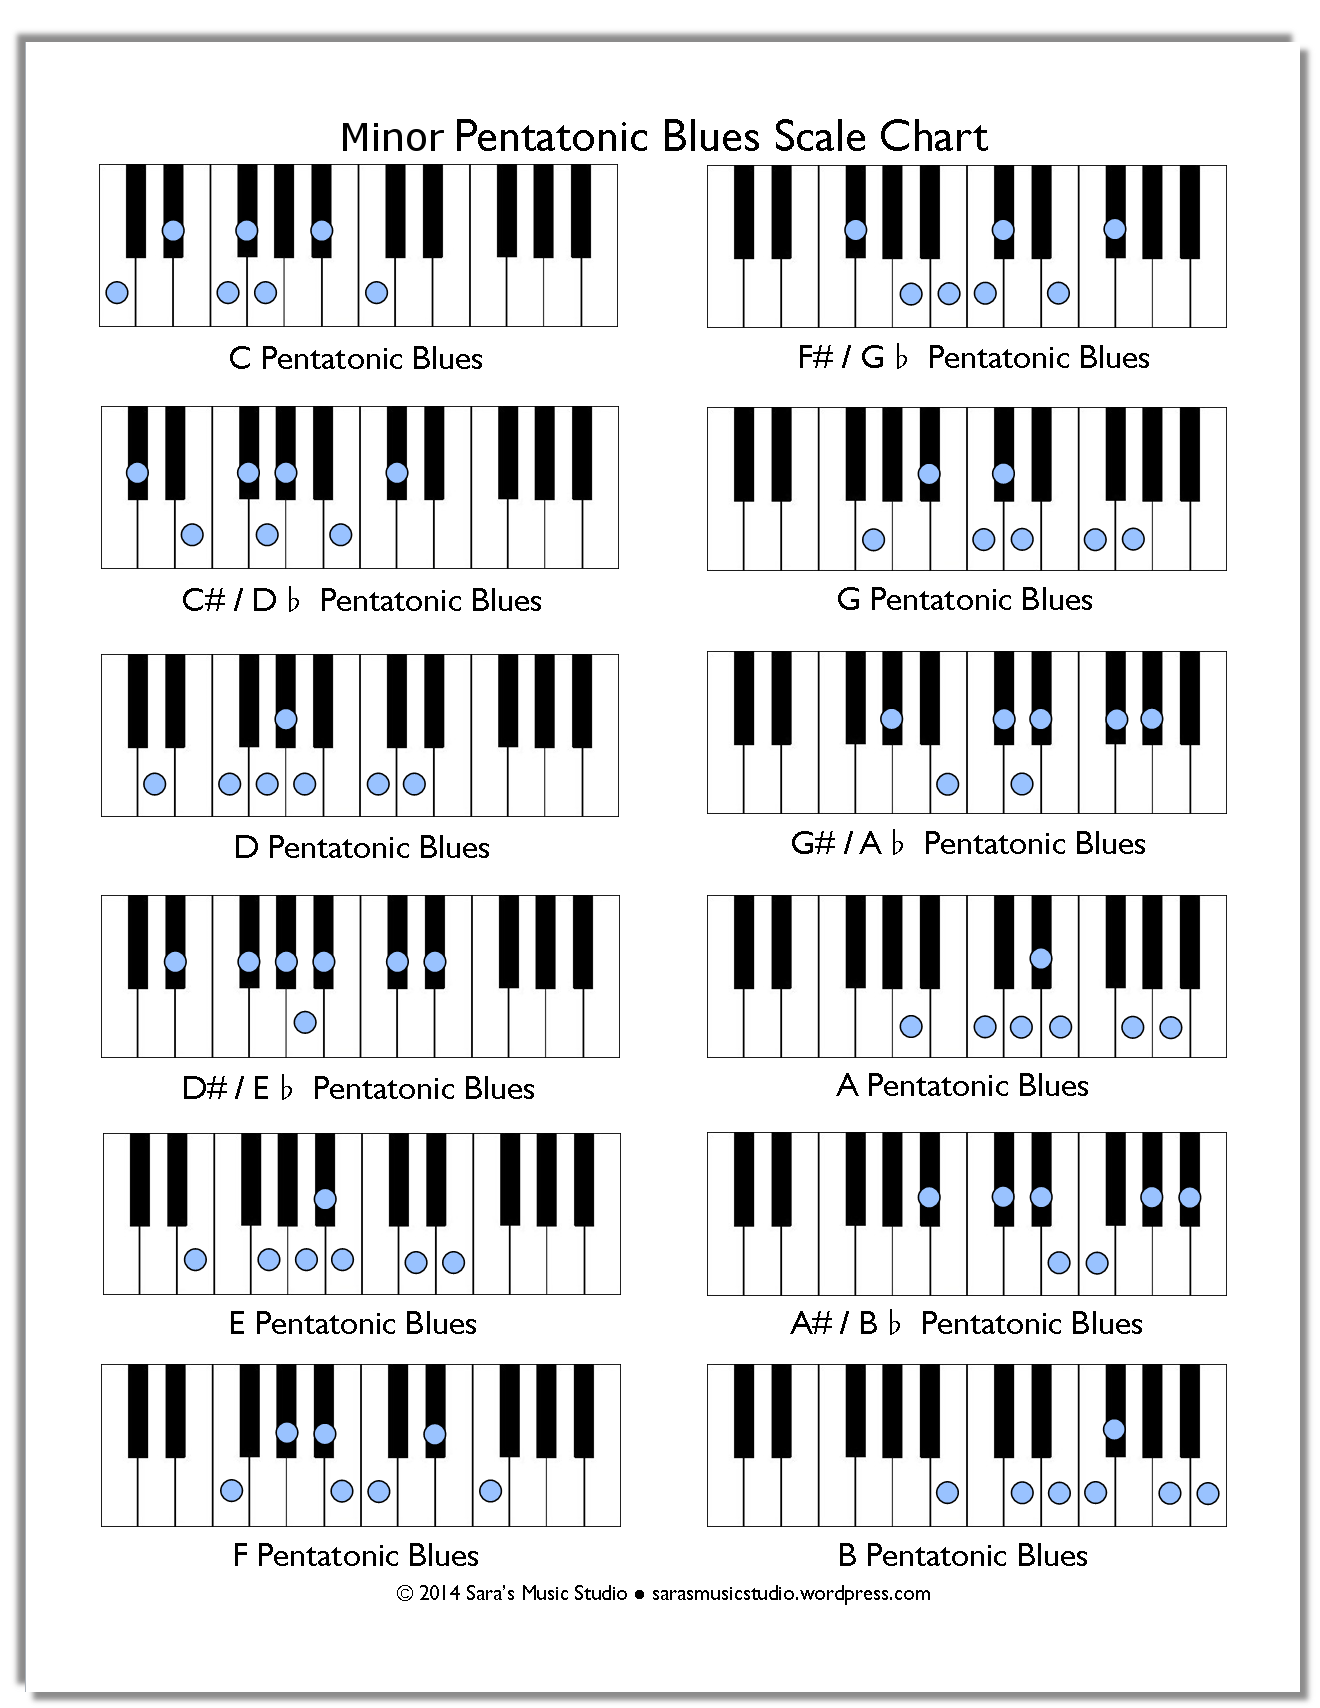 Free Minor Pentatonic Blues Scale Chart Con Imagenes